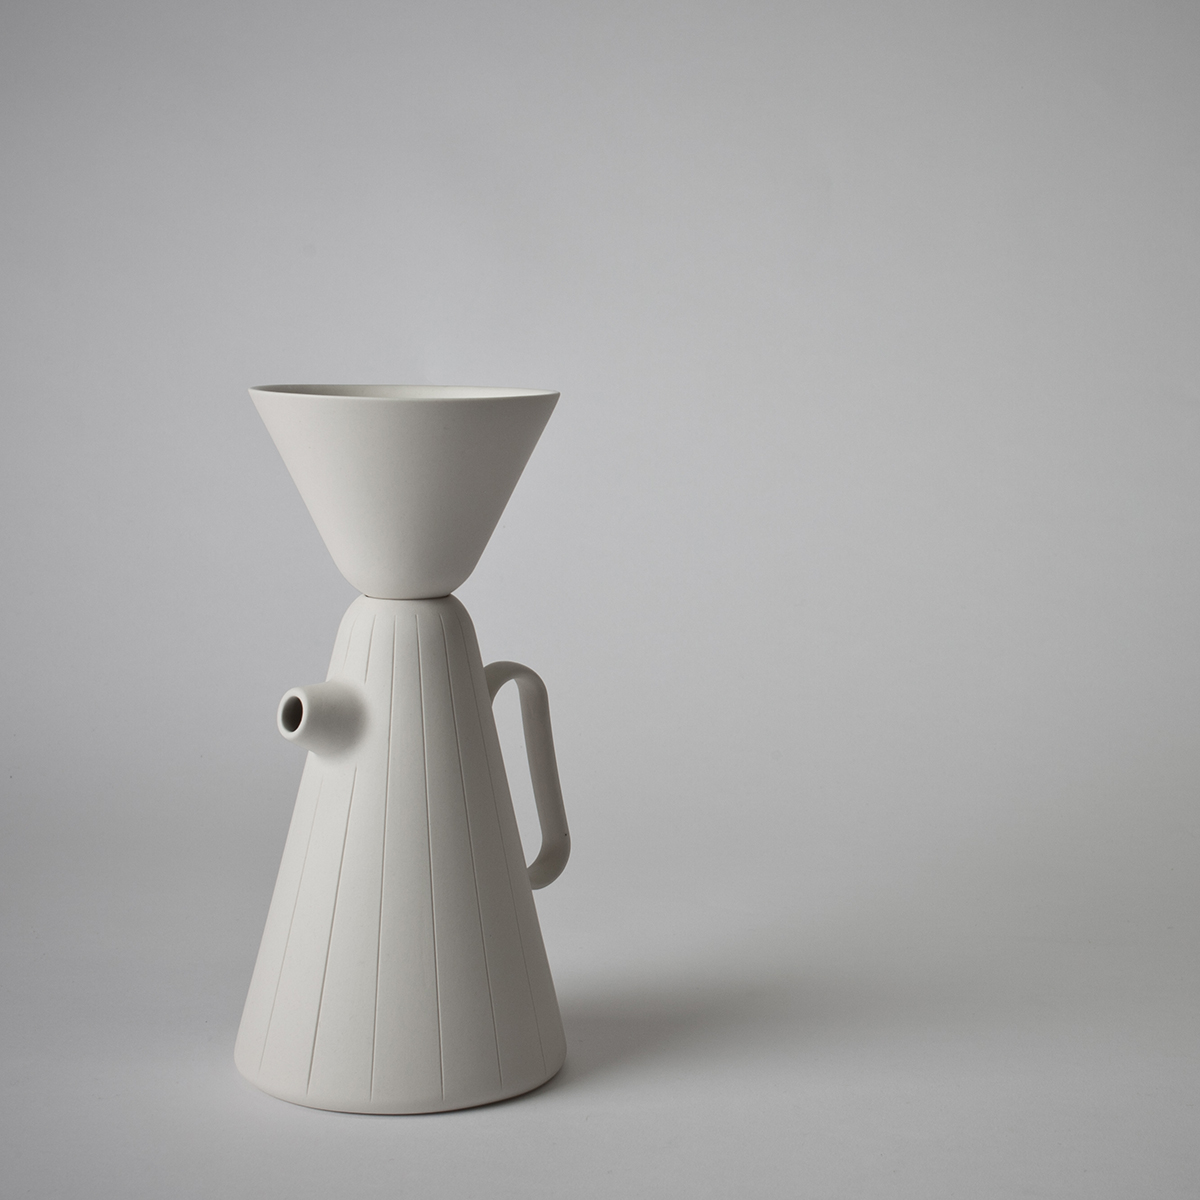 Sucabaruca coffee pot with funnel